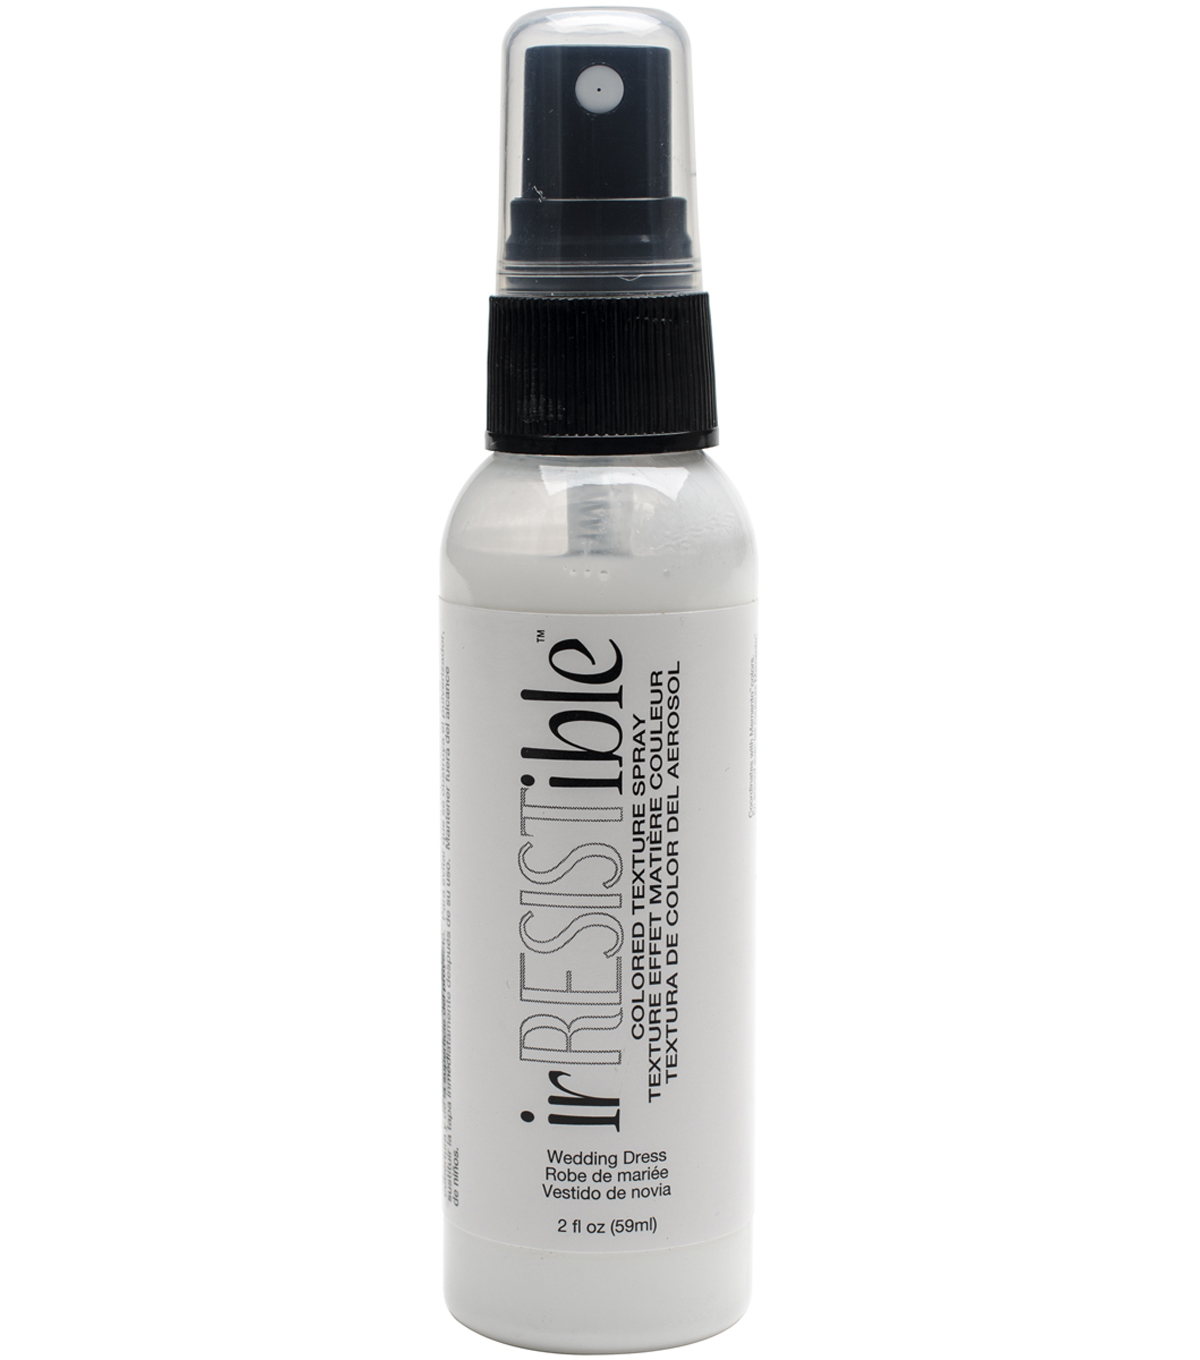 Tsukineko Irresistible Texture Spray